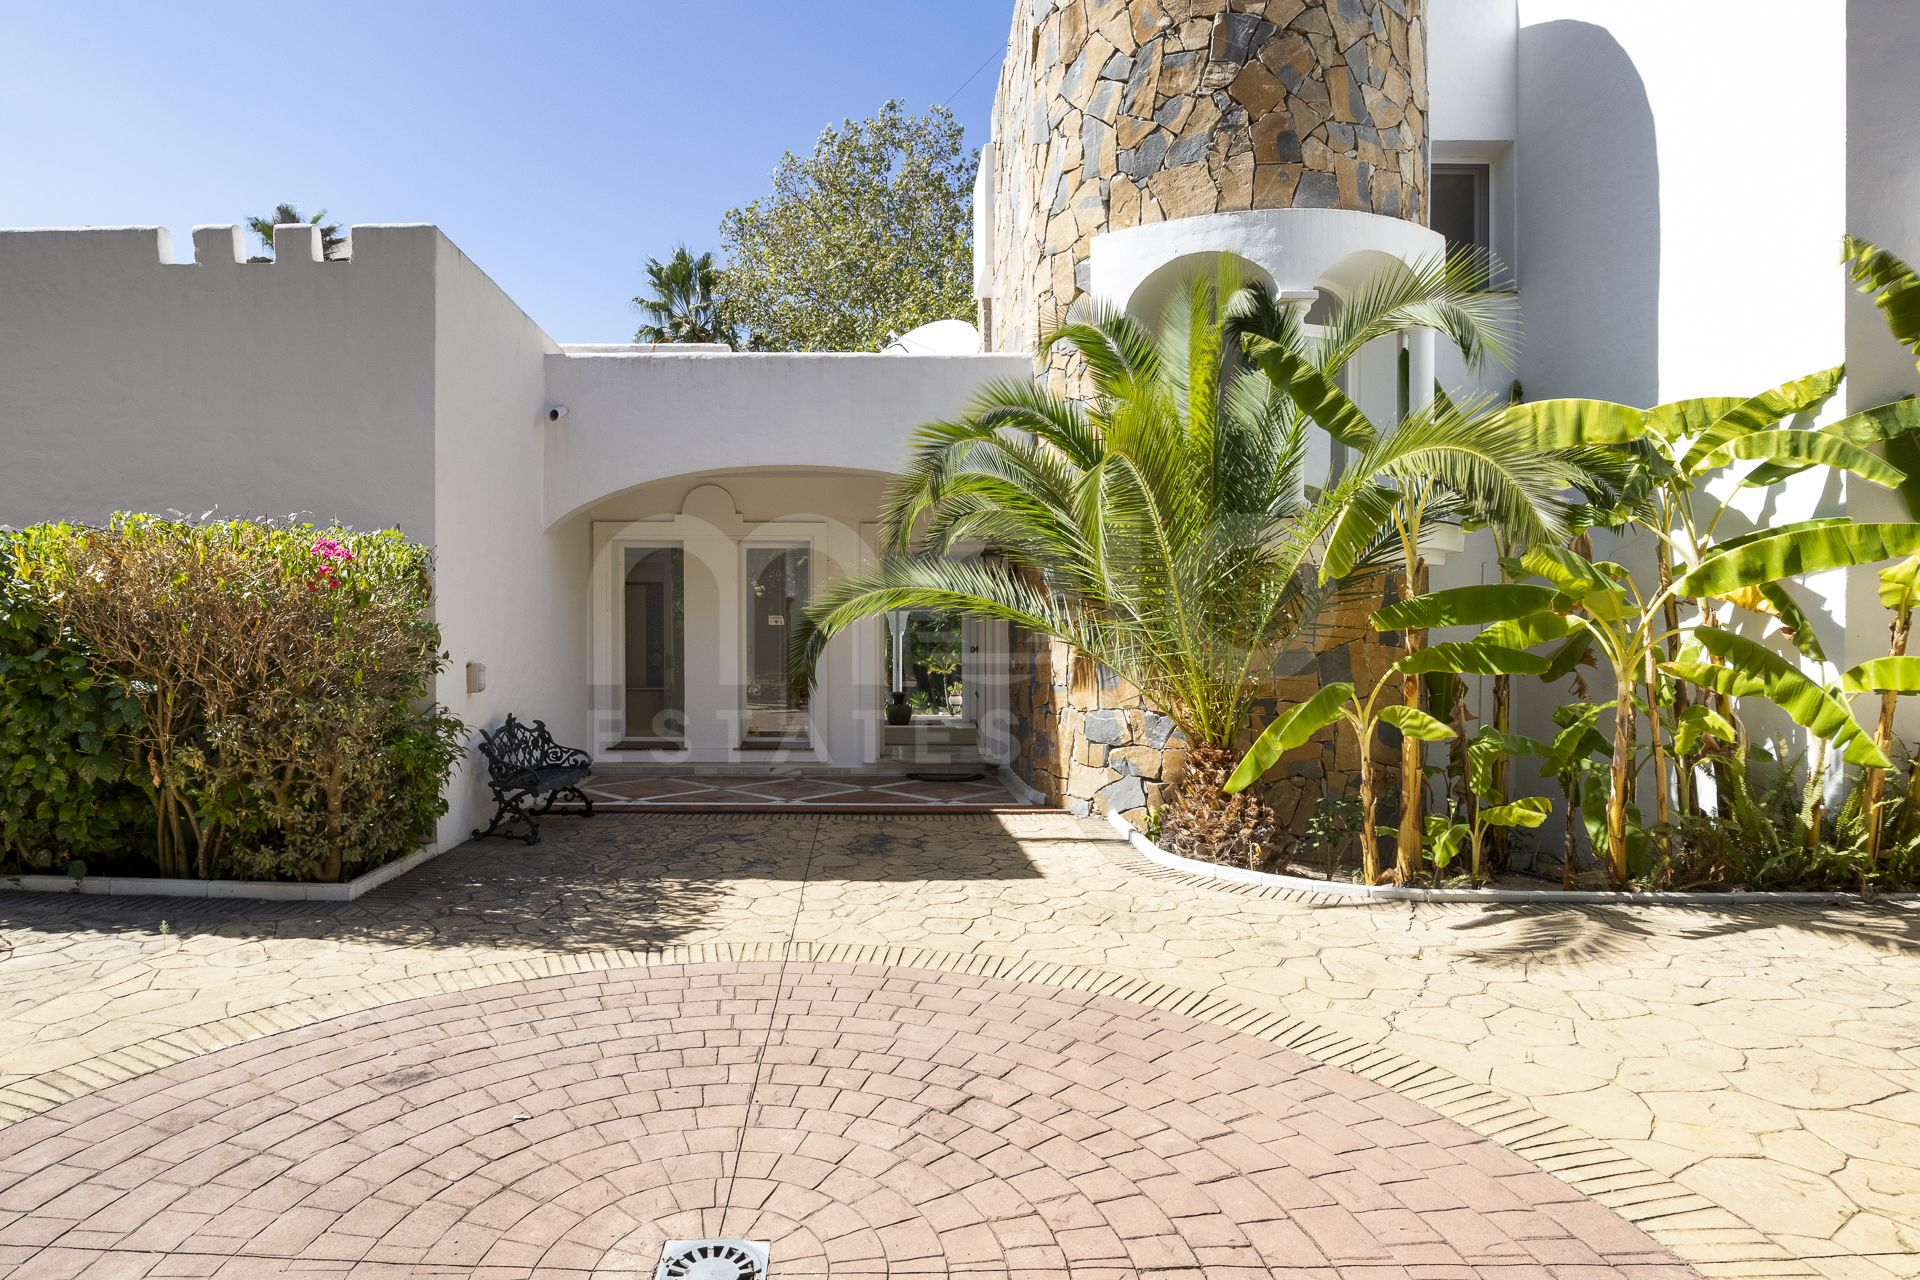 Elegant morish styled villa with potential, a hidden gem along the golfcourse.